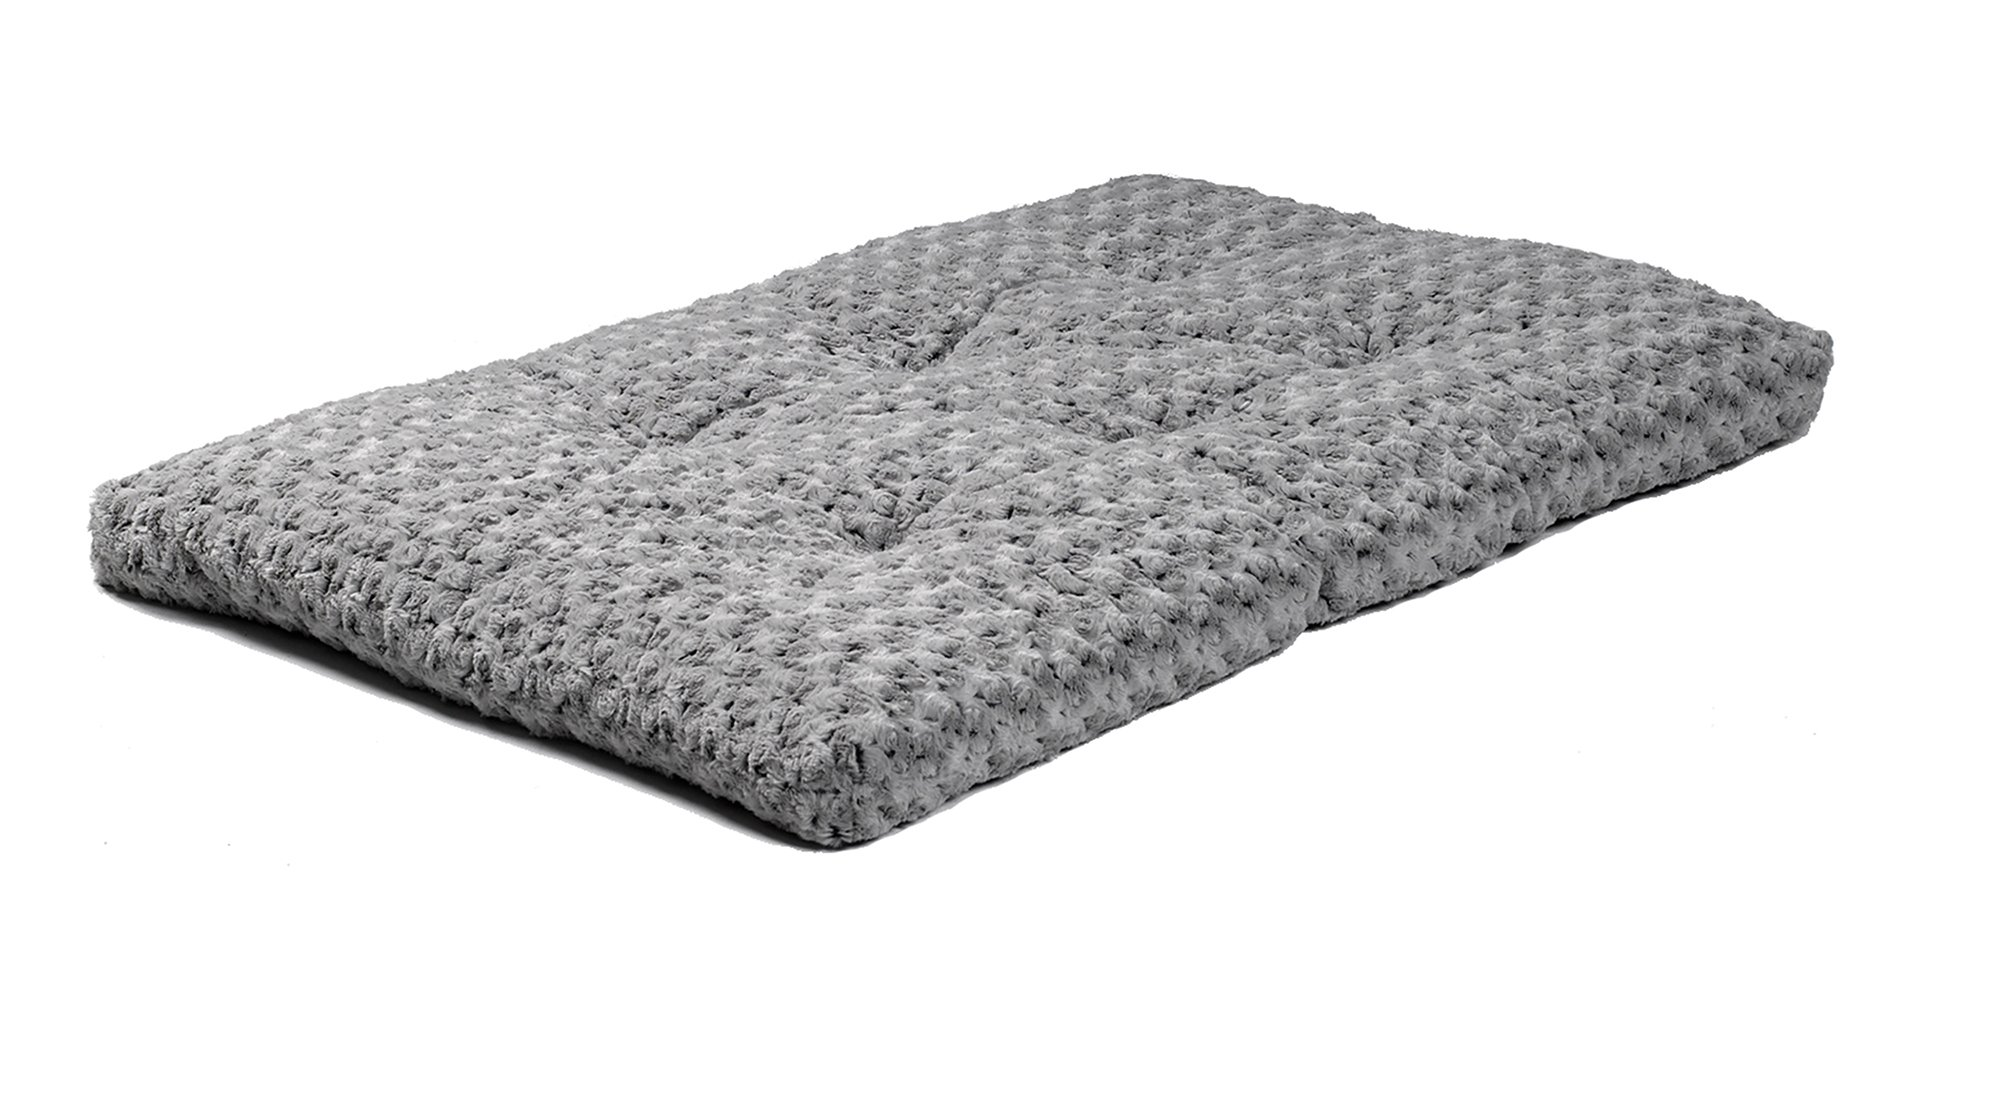 Plush Dog Bed | Ombré Swirl Dog Bed & Cat Bed | Gray 46L x 29W x 3H - Inches for XL Dog Breeds